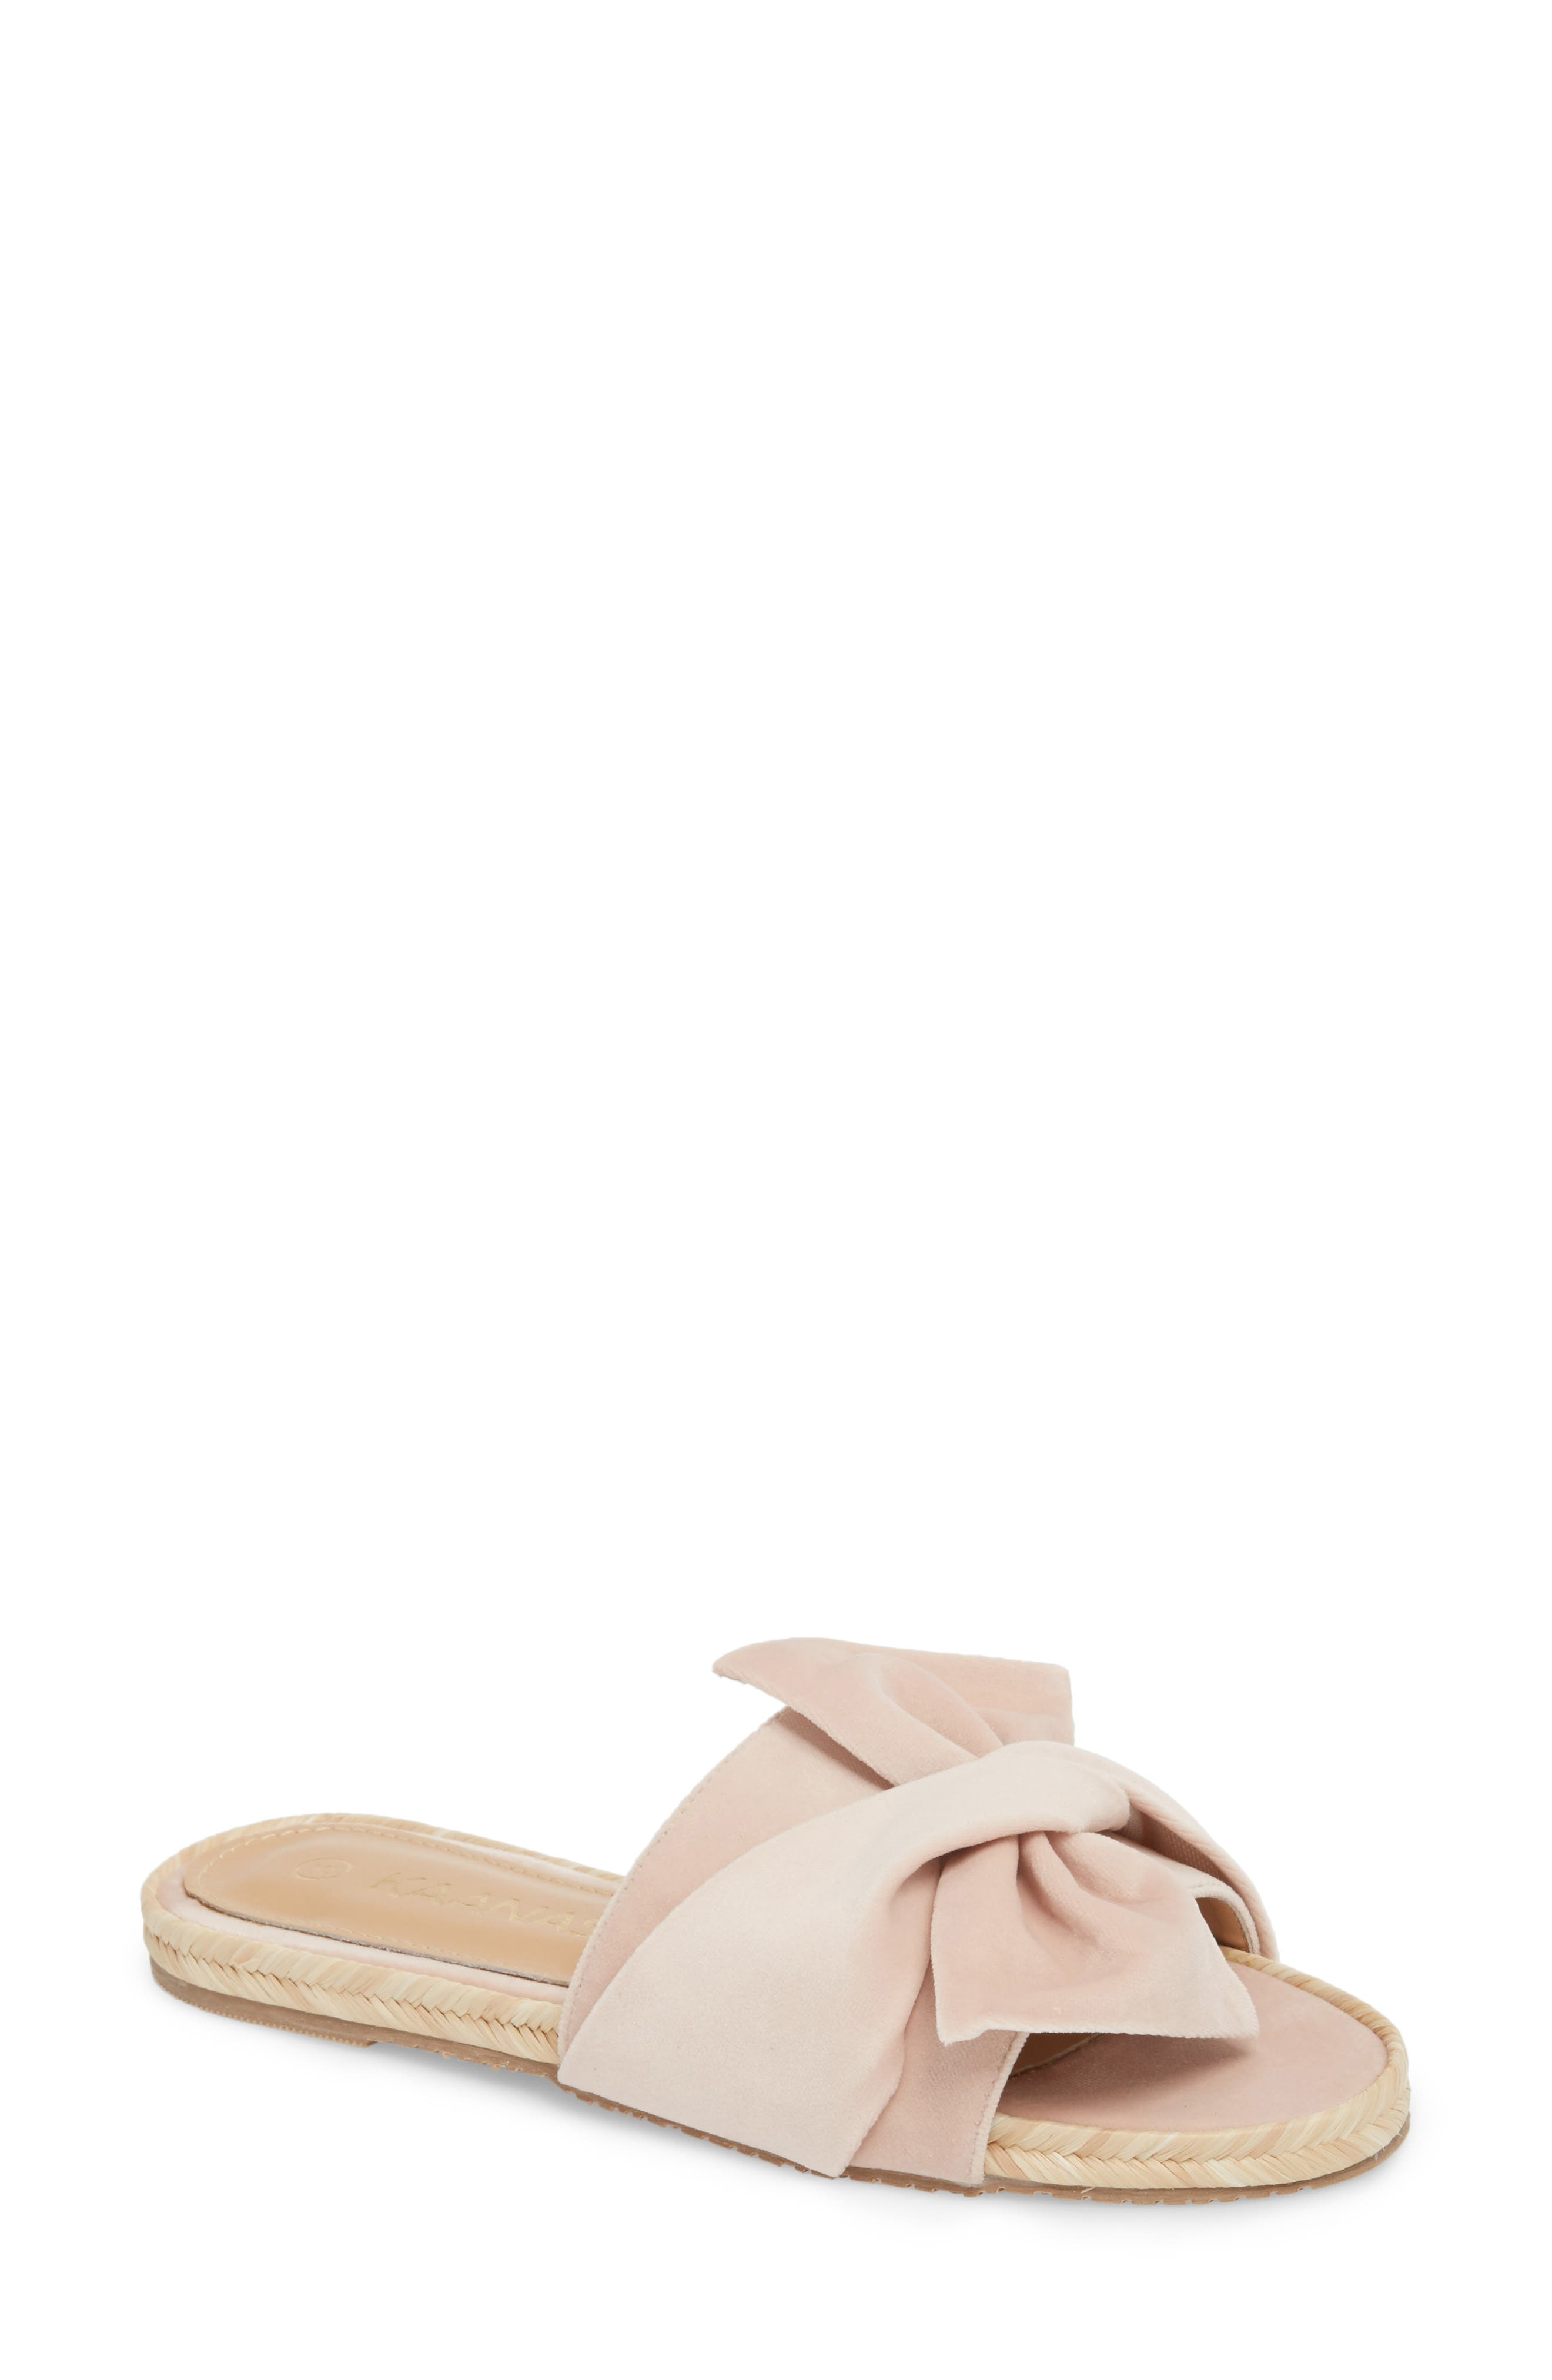 Sausalito Knotted Slide Sandal,                         Main,                         color, Nude